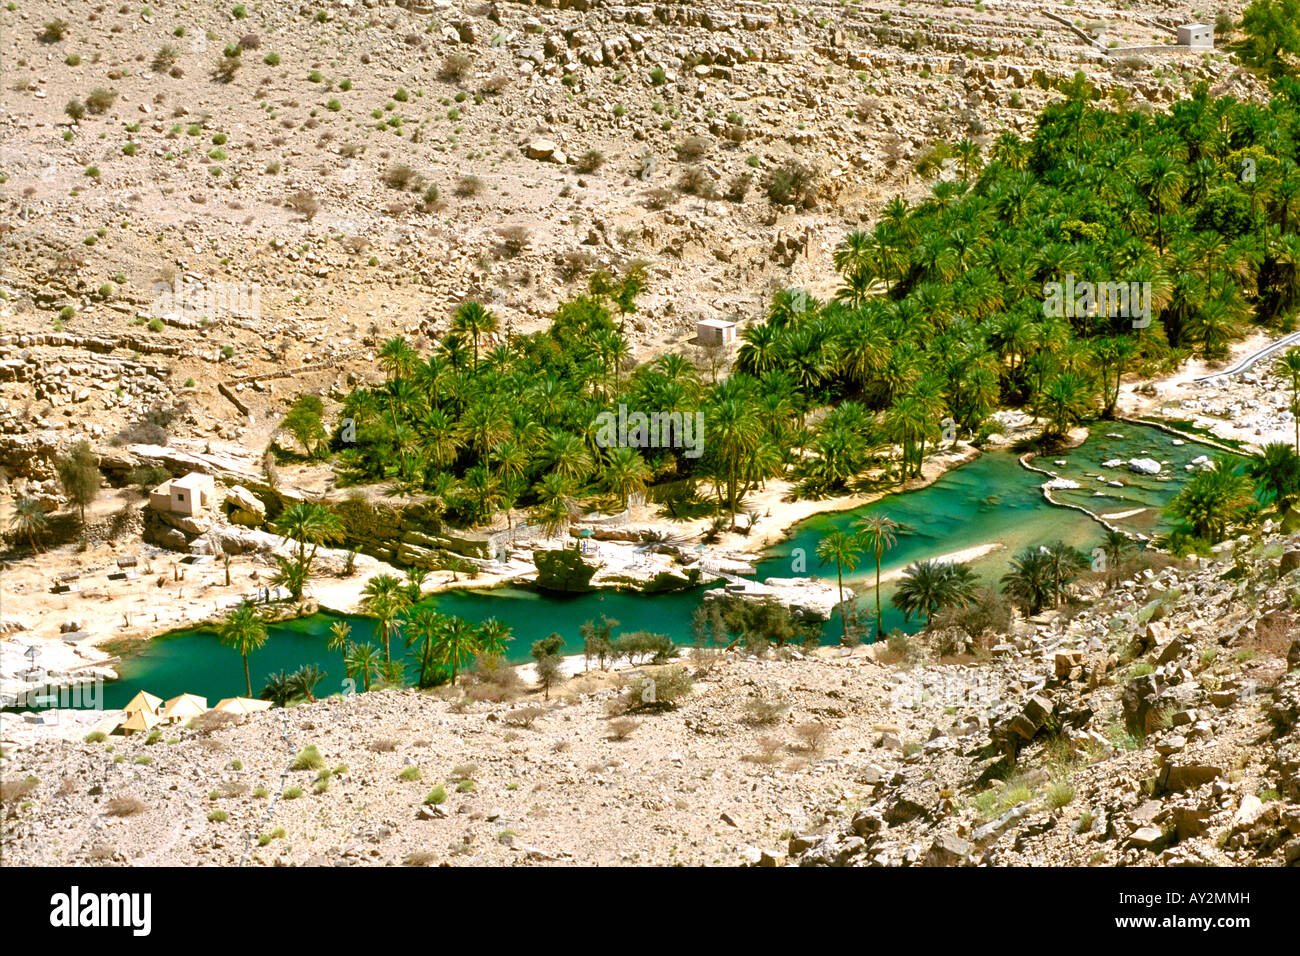 Date palms and rock pools of Wadi Bani Khalid in the Eastern Hajar mountains of Oman. - Stock Image